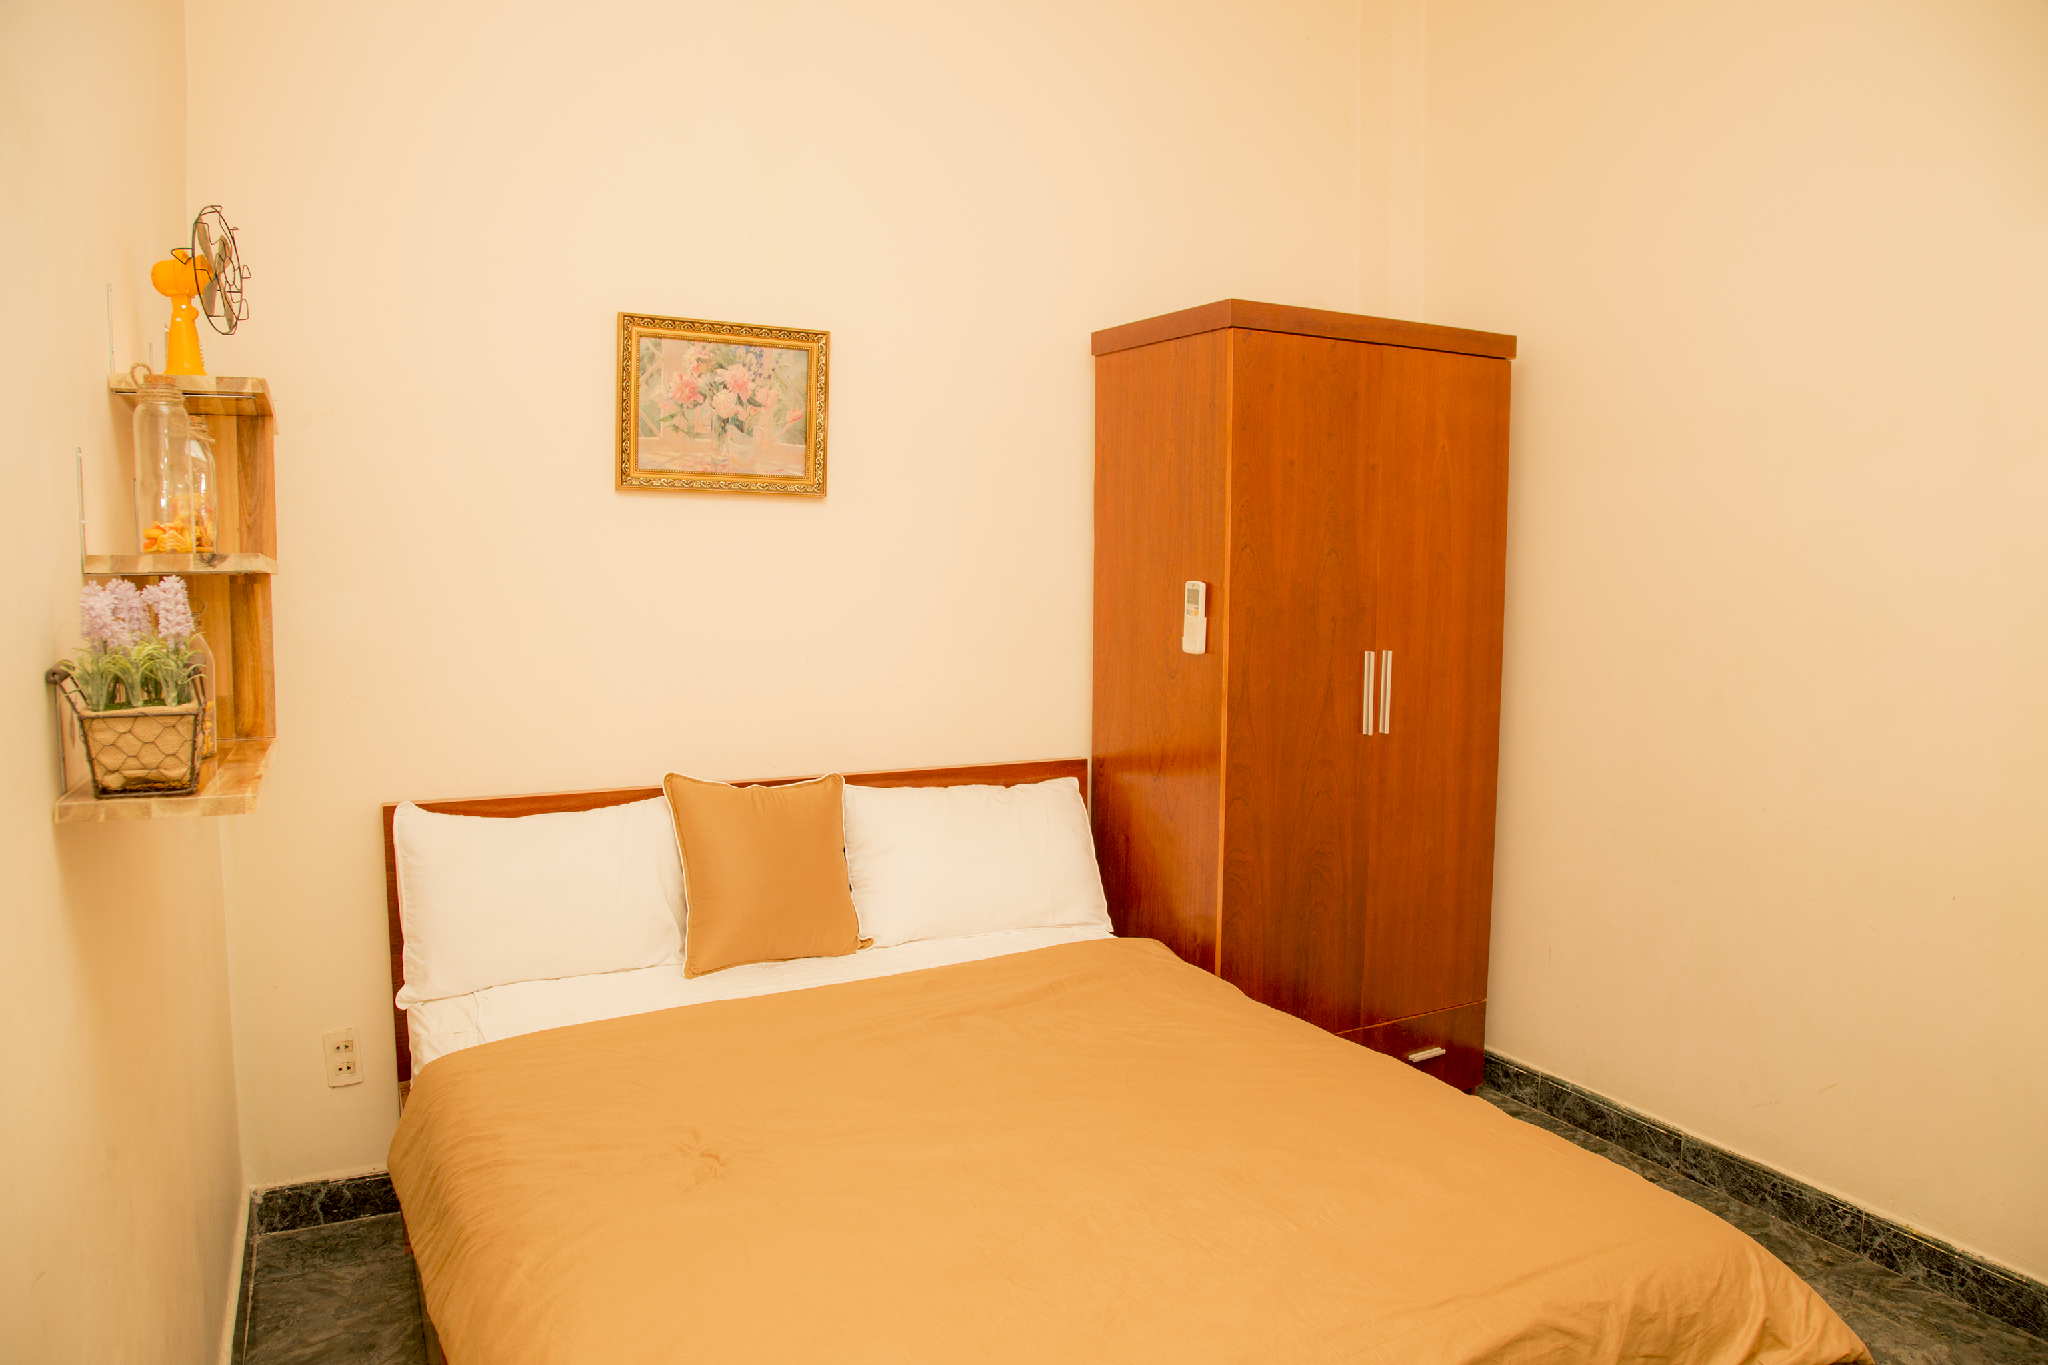 Bui Vien Miss Home Standard Double Room 1